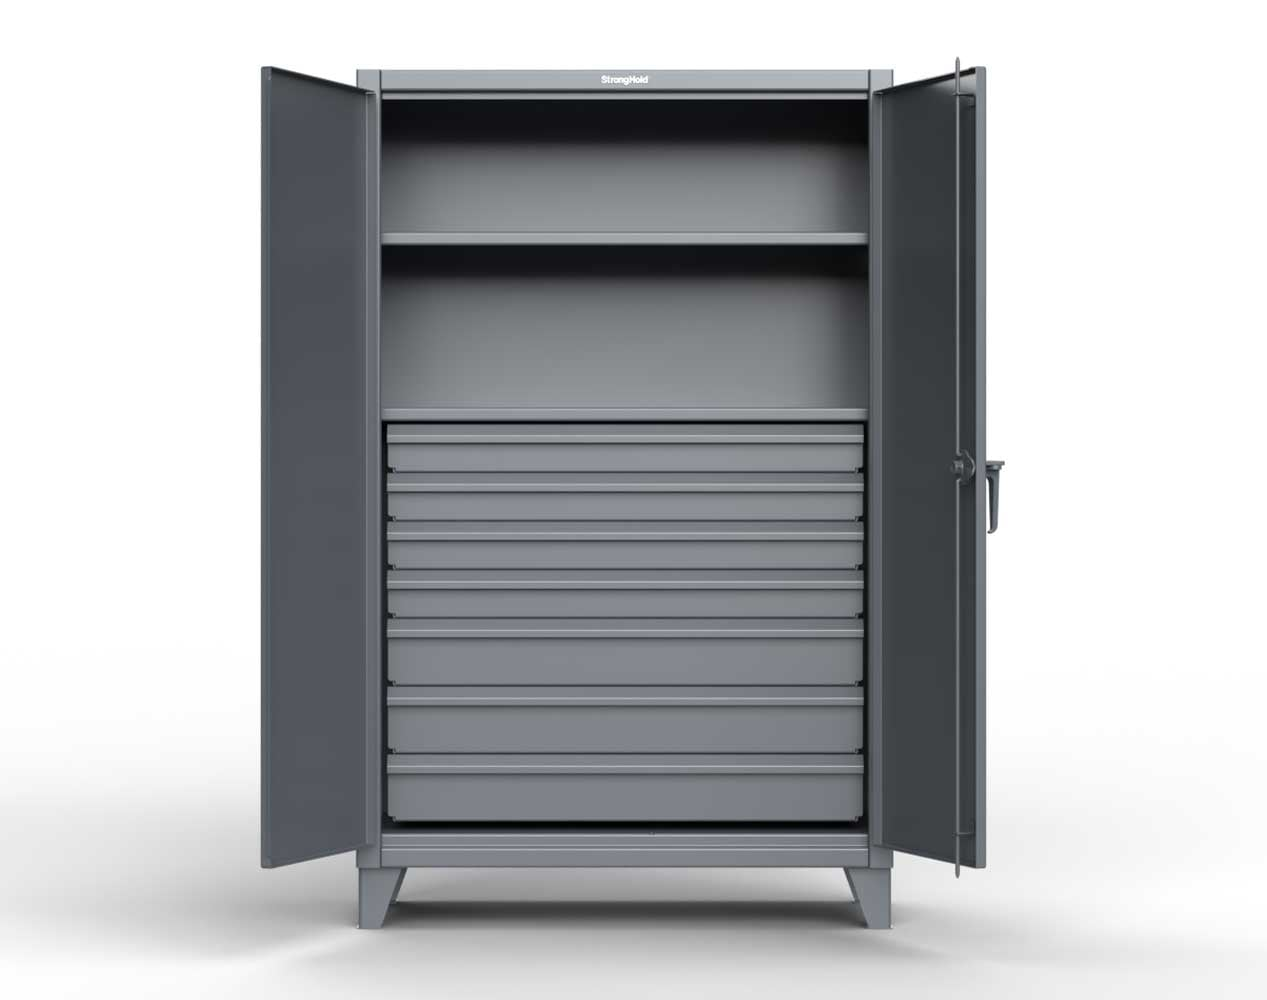 Extra Heavy Duty 12 GA Cabinet with 7 Drawers, 2 Shelves- 36 In. W x 24 In. D x 78 In. H